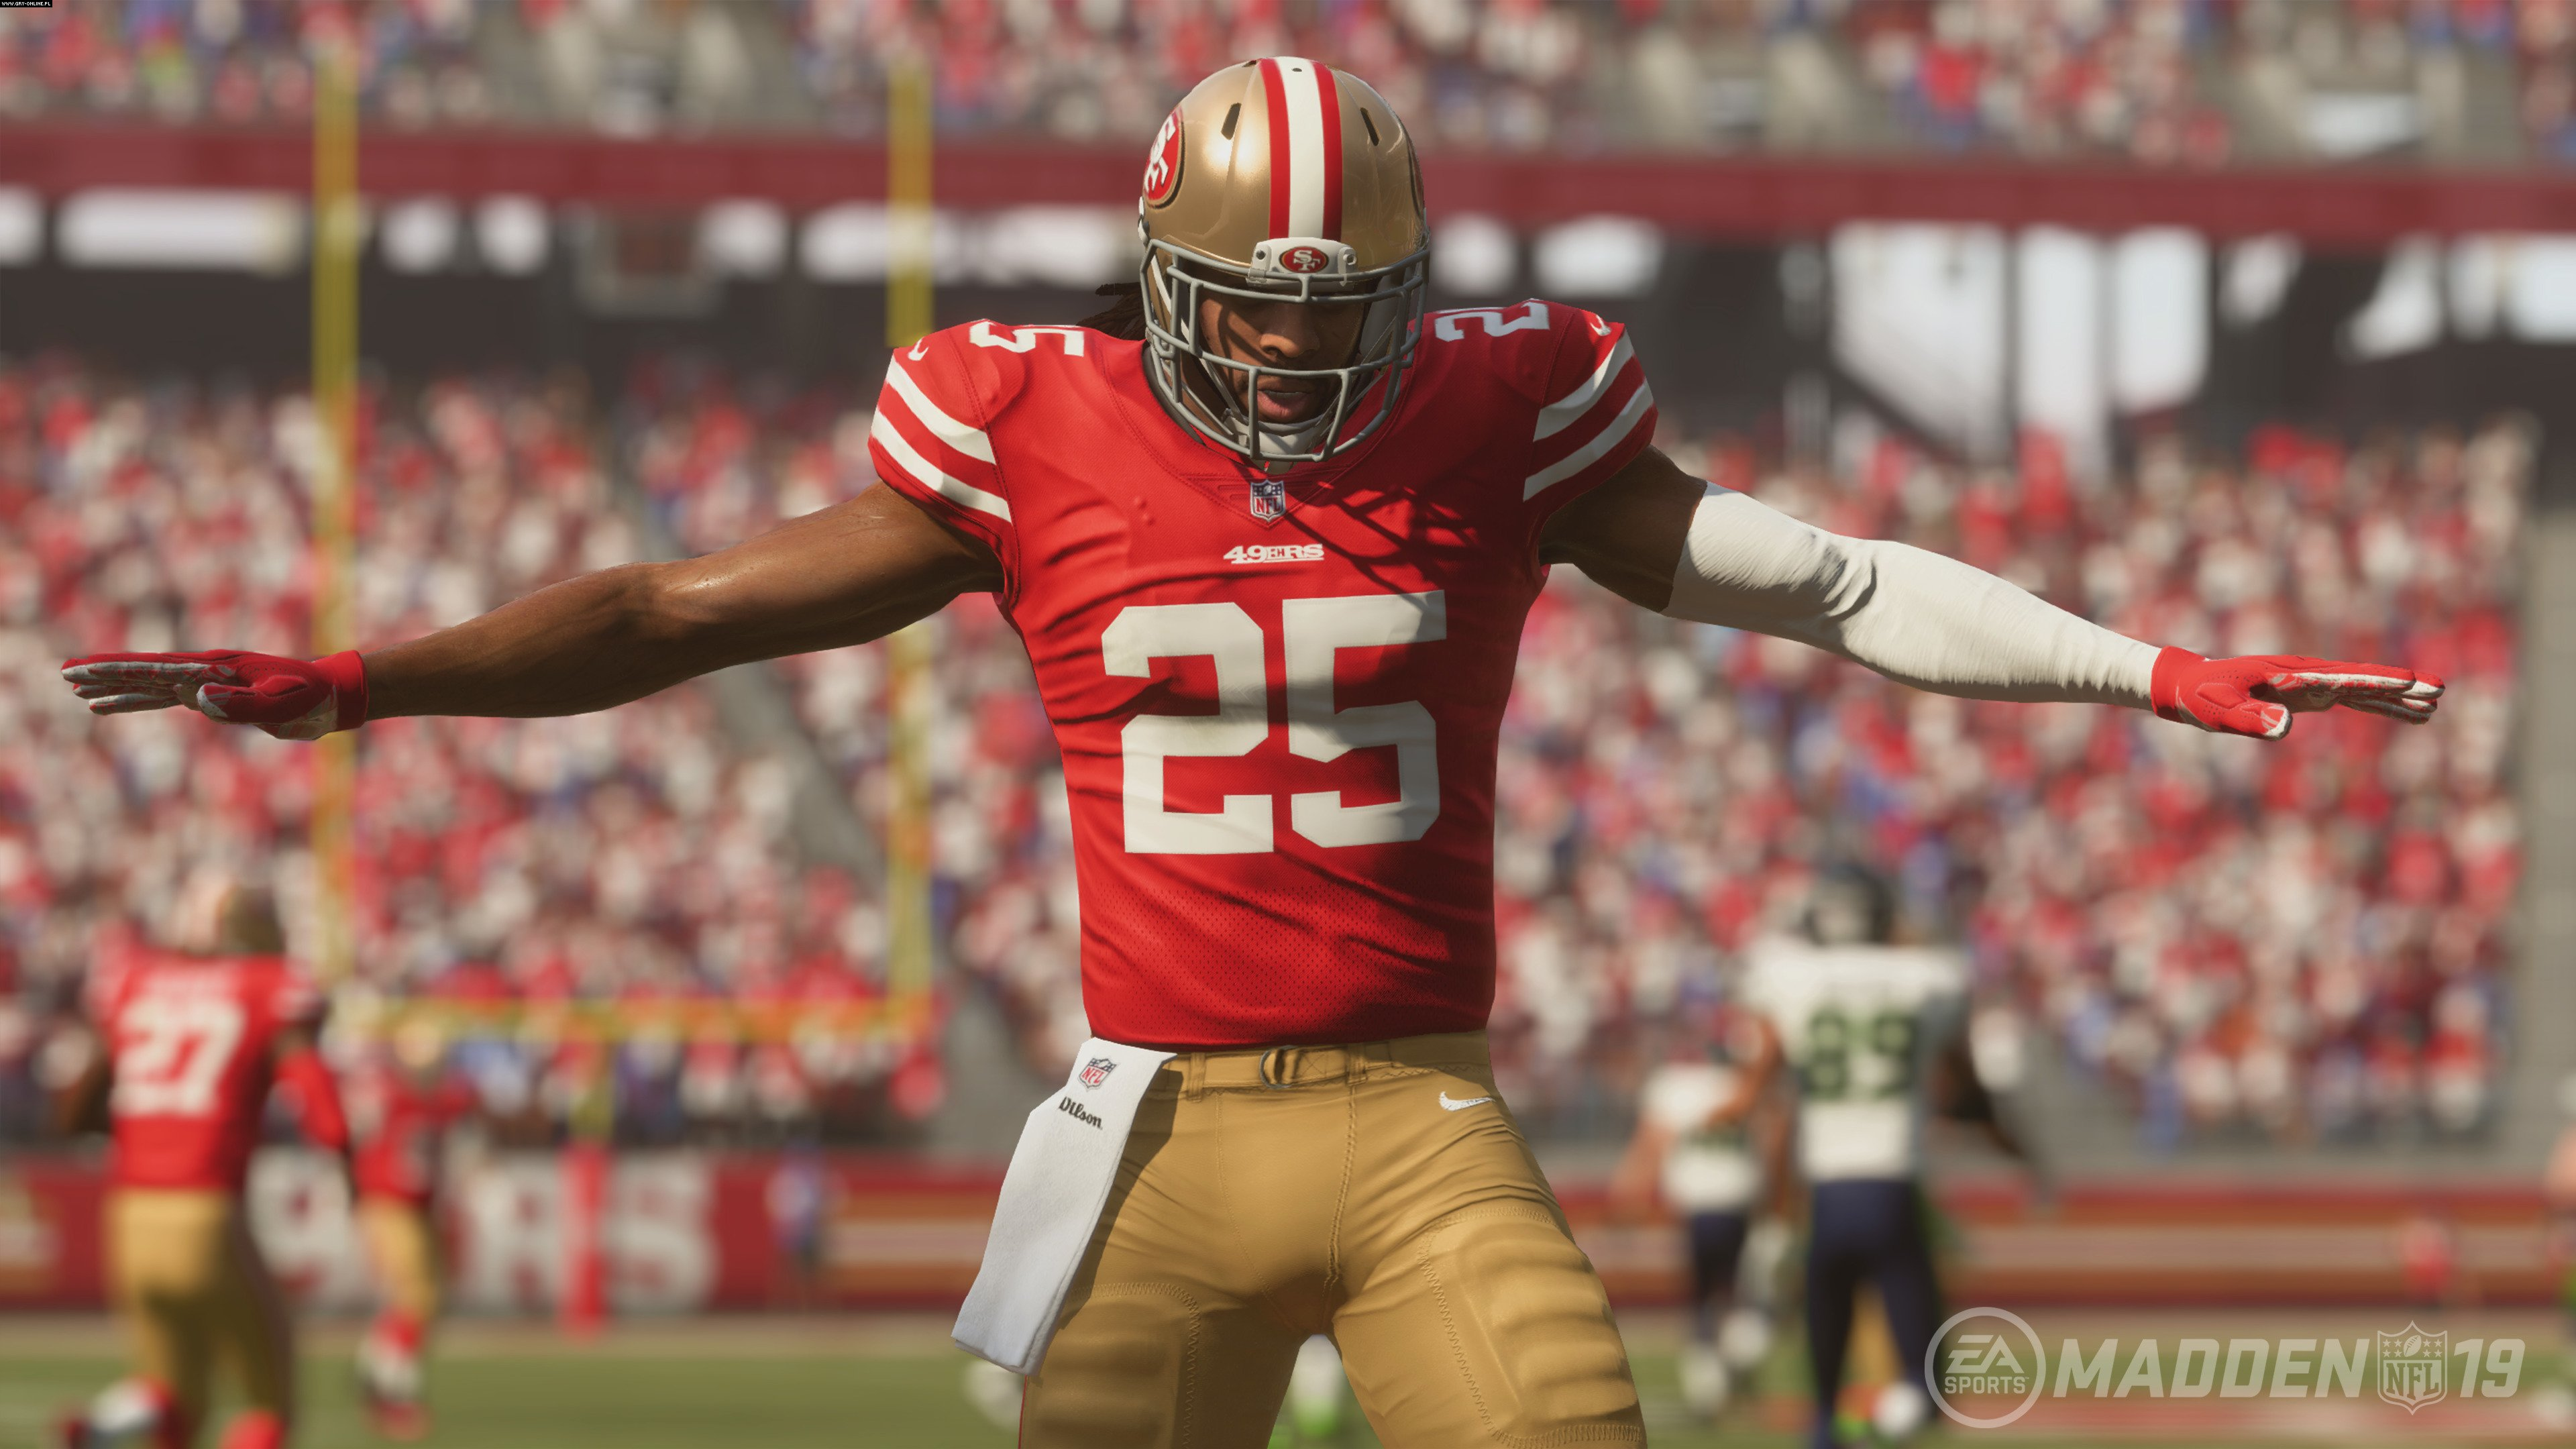 Madden NFL 19 PC, PS4, XONE Games Image 1/9, EA Sports, Electronic Arts Inc.